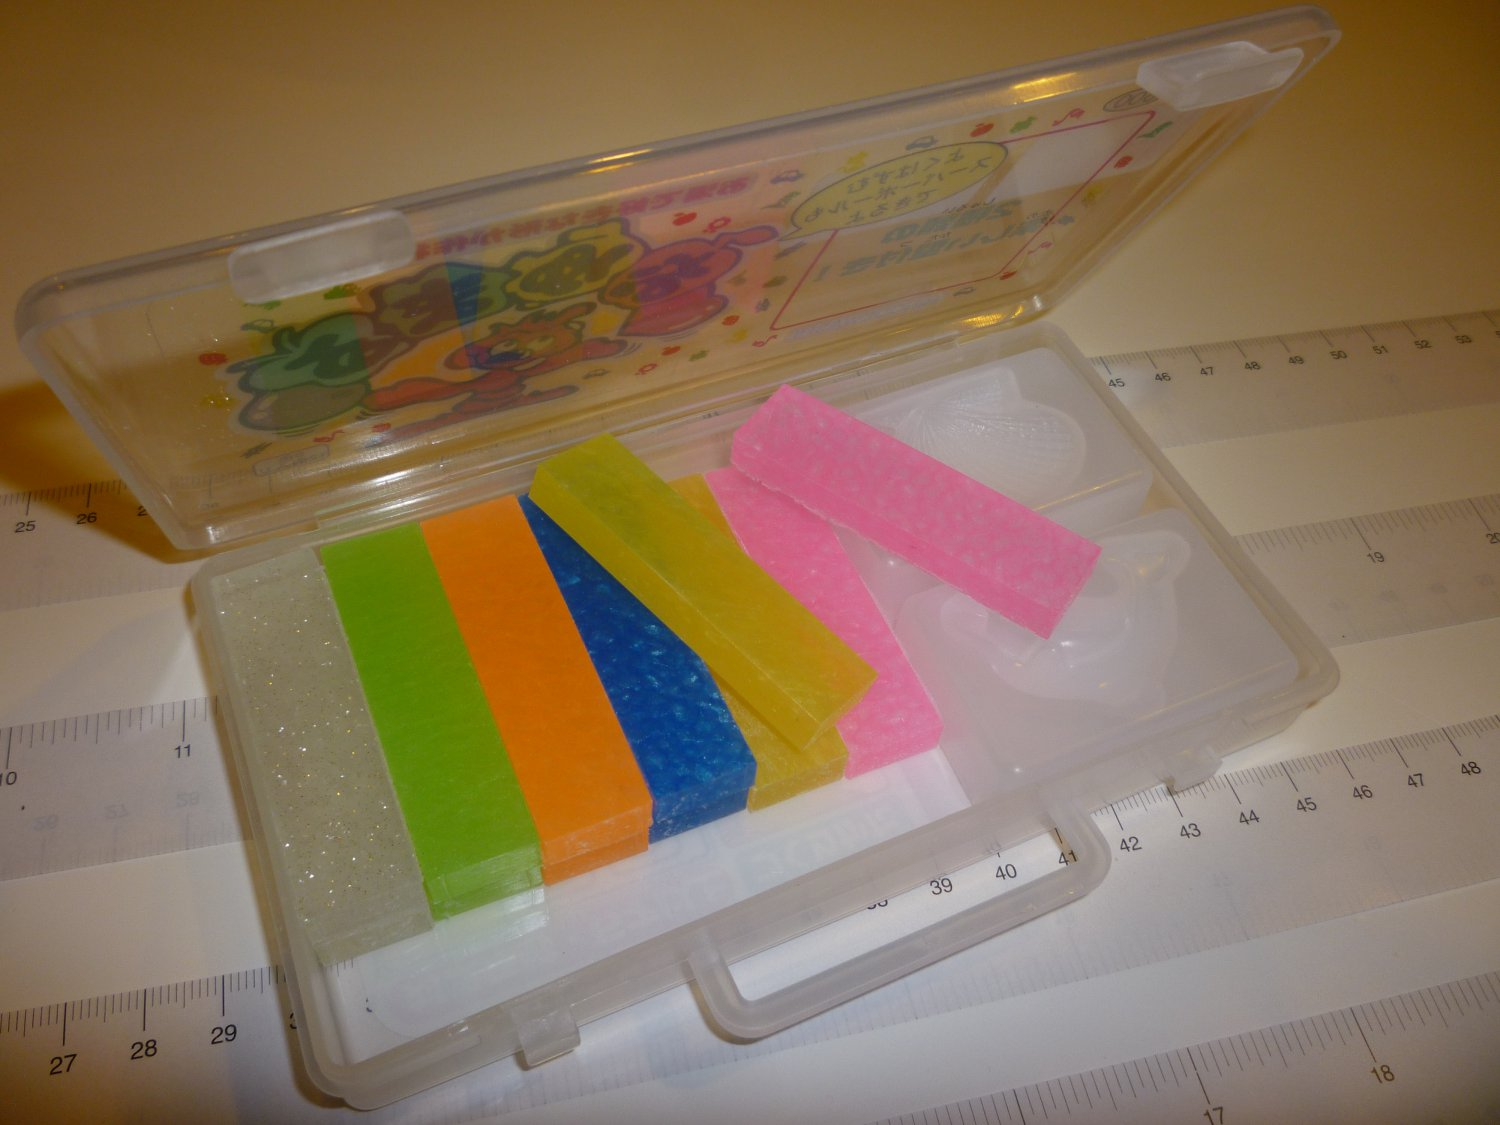 Clay Mold making Oyumaru (Multi color)-1 pkg (12) plus 2 molds - Make clay molds, use only hot water